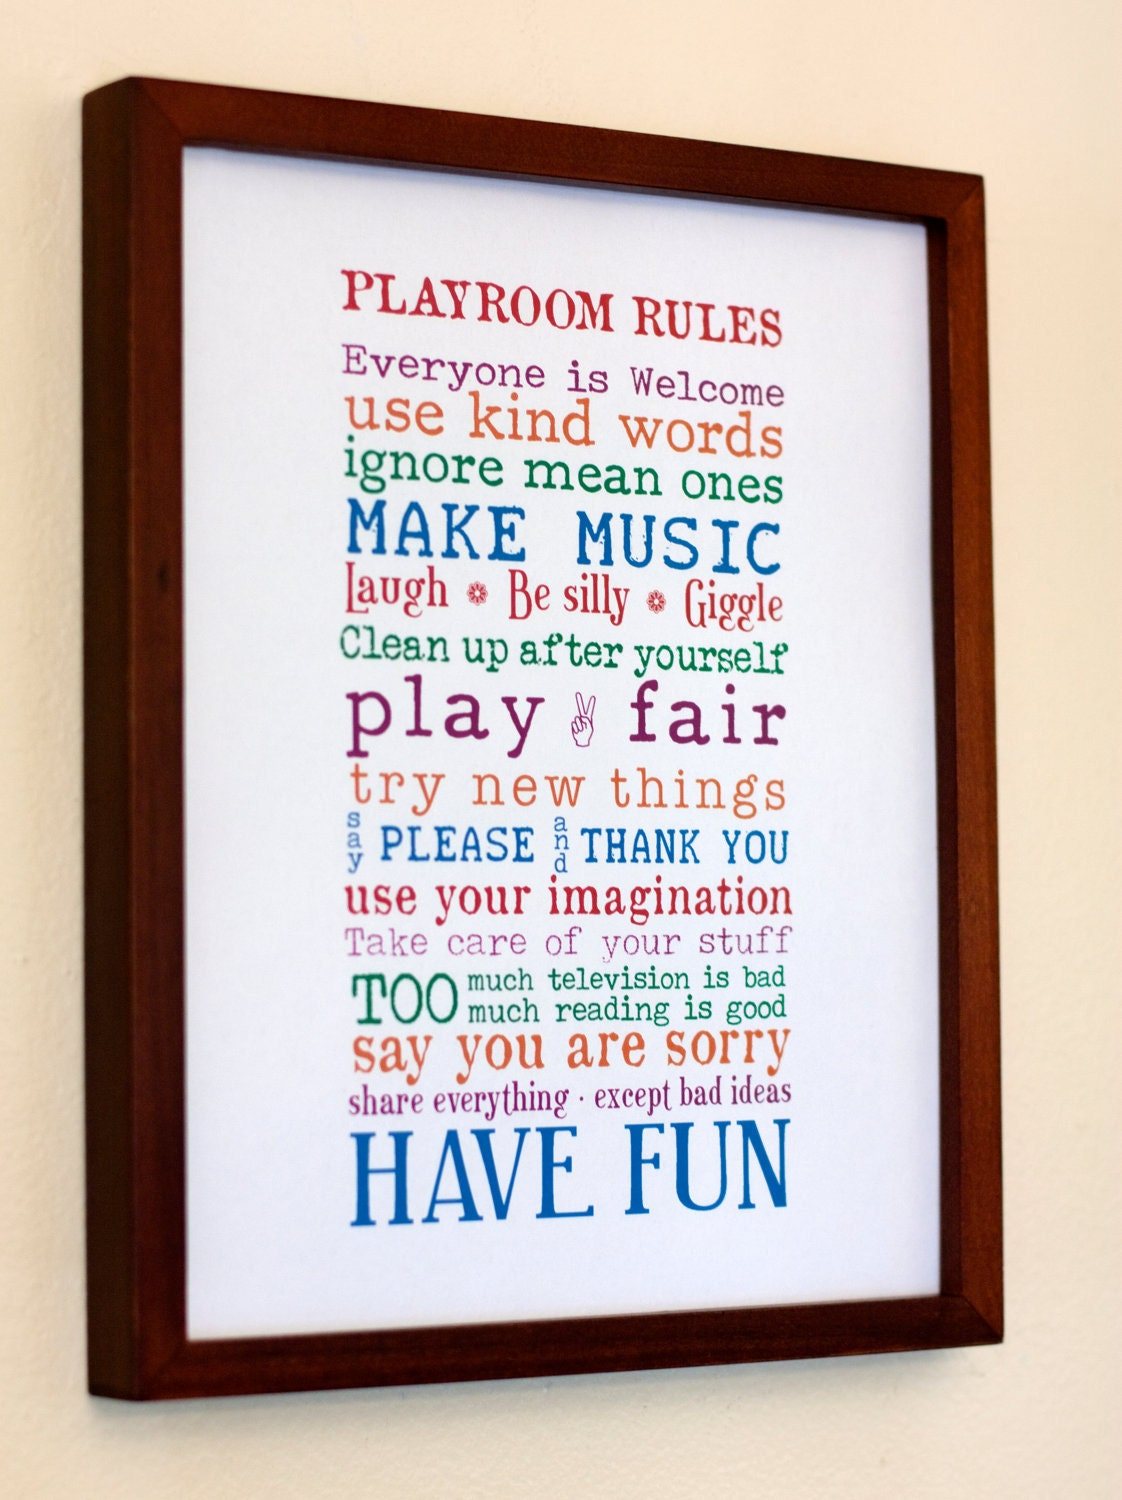 Print Your Own 11x14 Playroom Rules Sign. Oak Signs. Gid Signs. Daily Life Signs. Telugu Signs